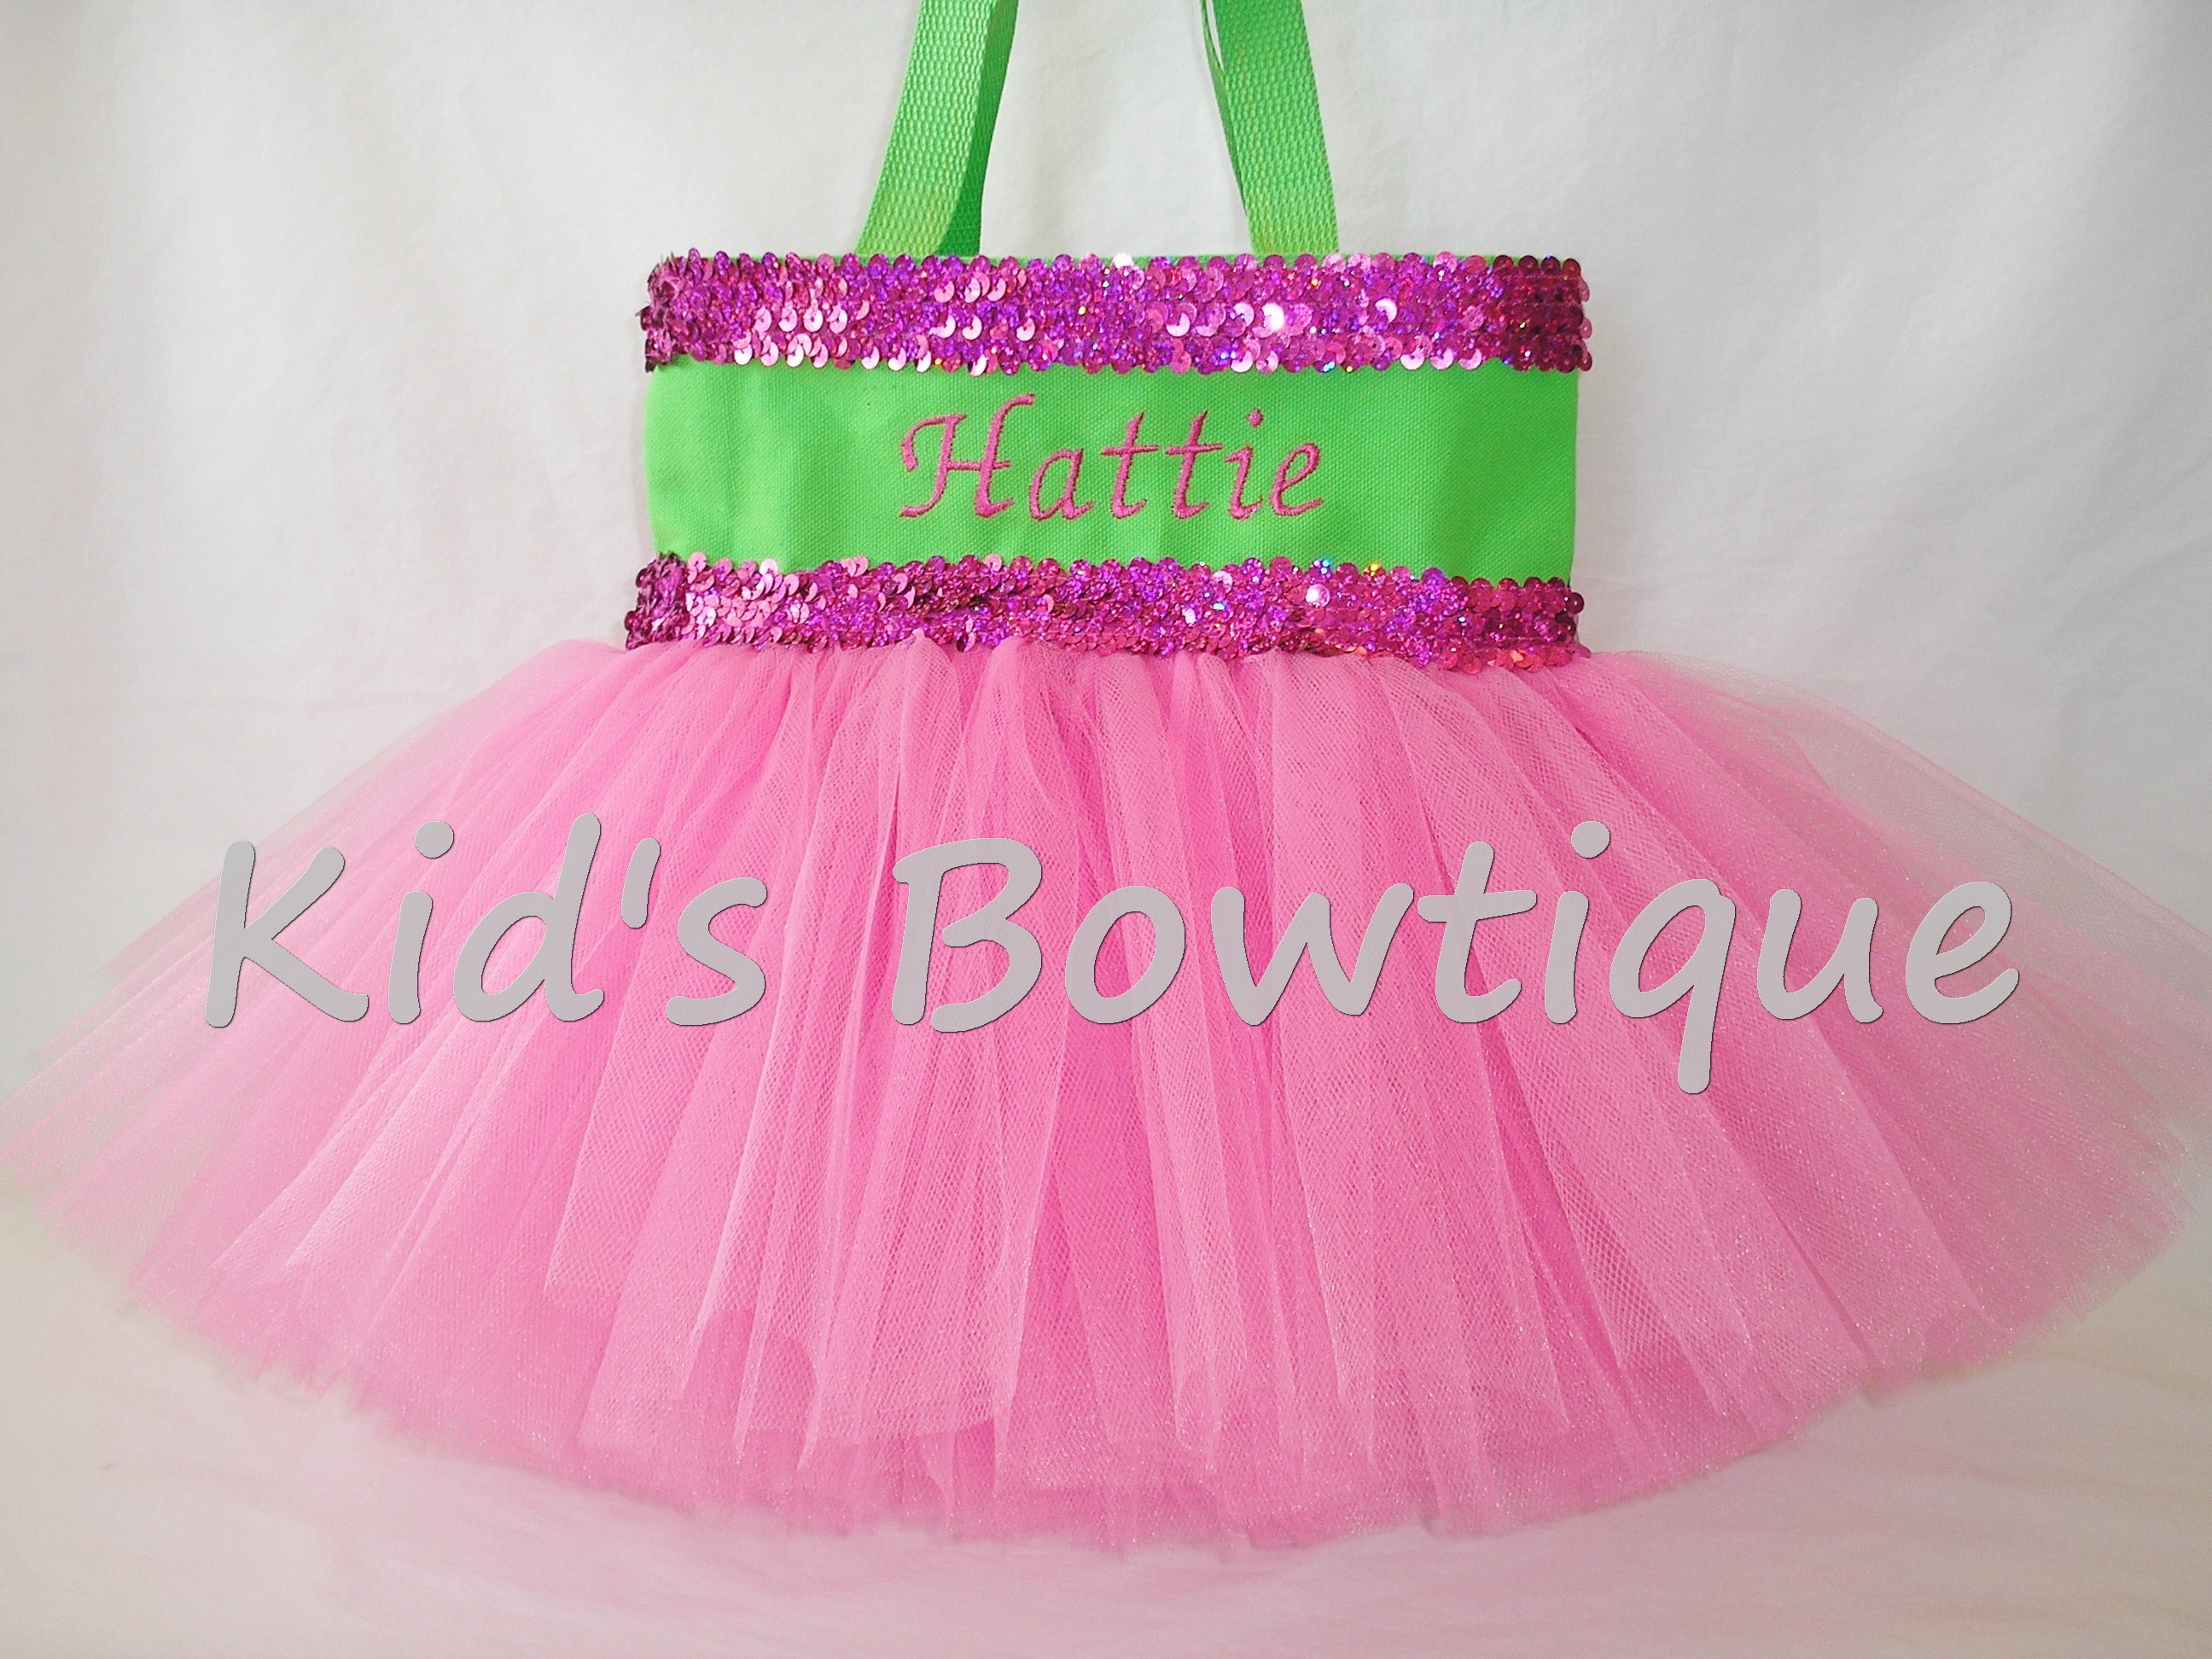 Monogrammed Tutu Tote Bag - ttb46 Lime with Double Hot Pink Sequins